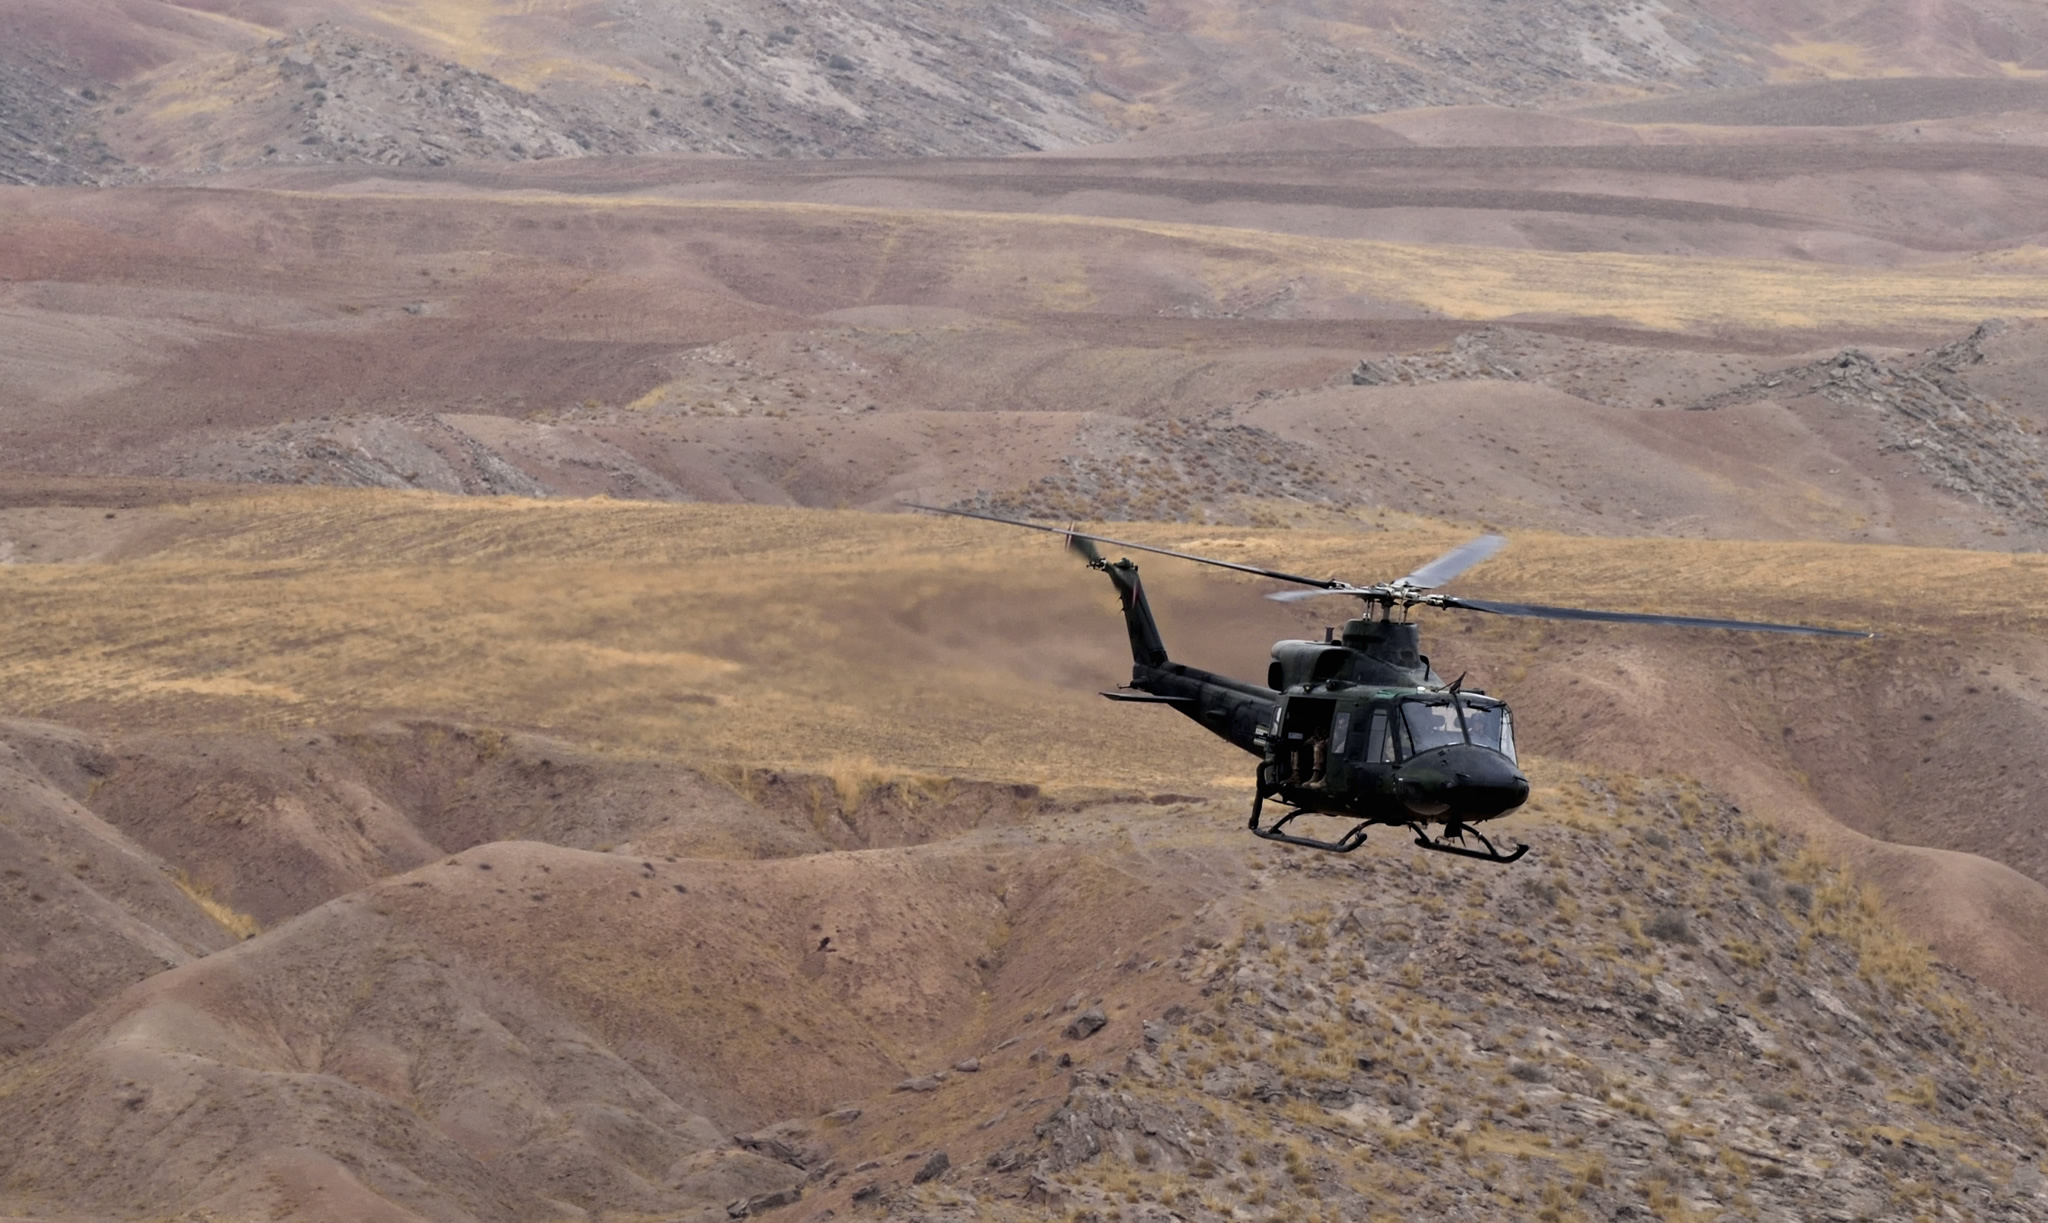 Helicopter flies over hilly landscape.